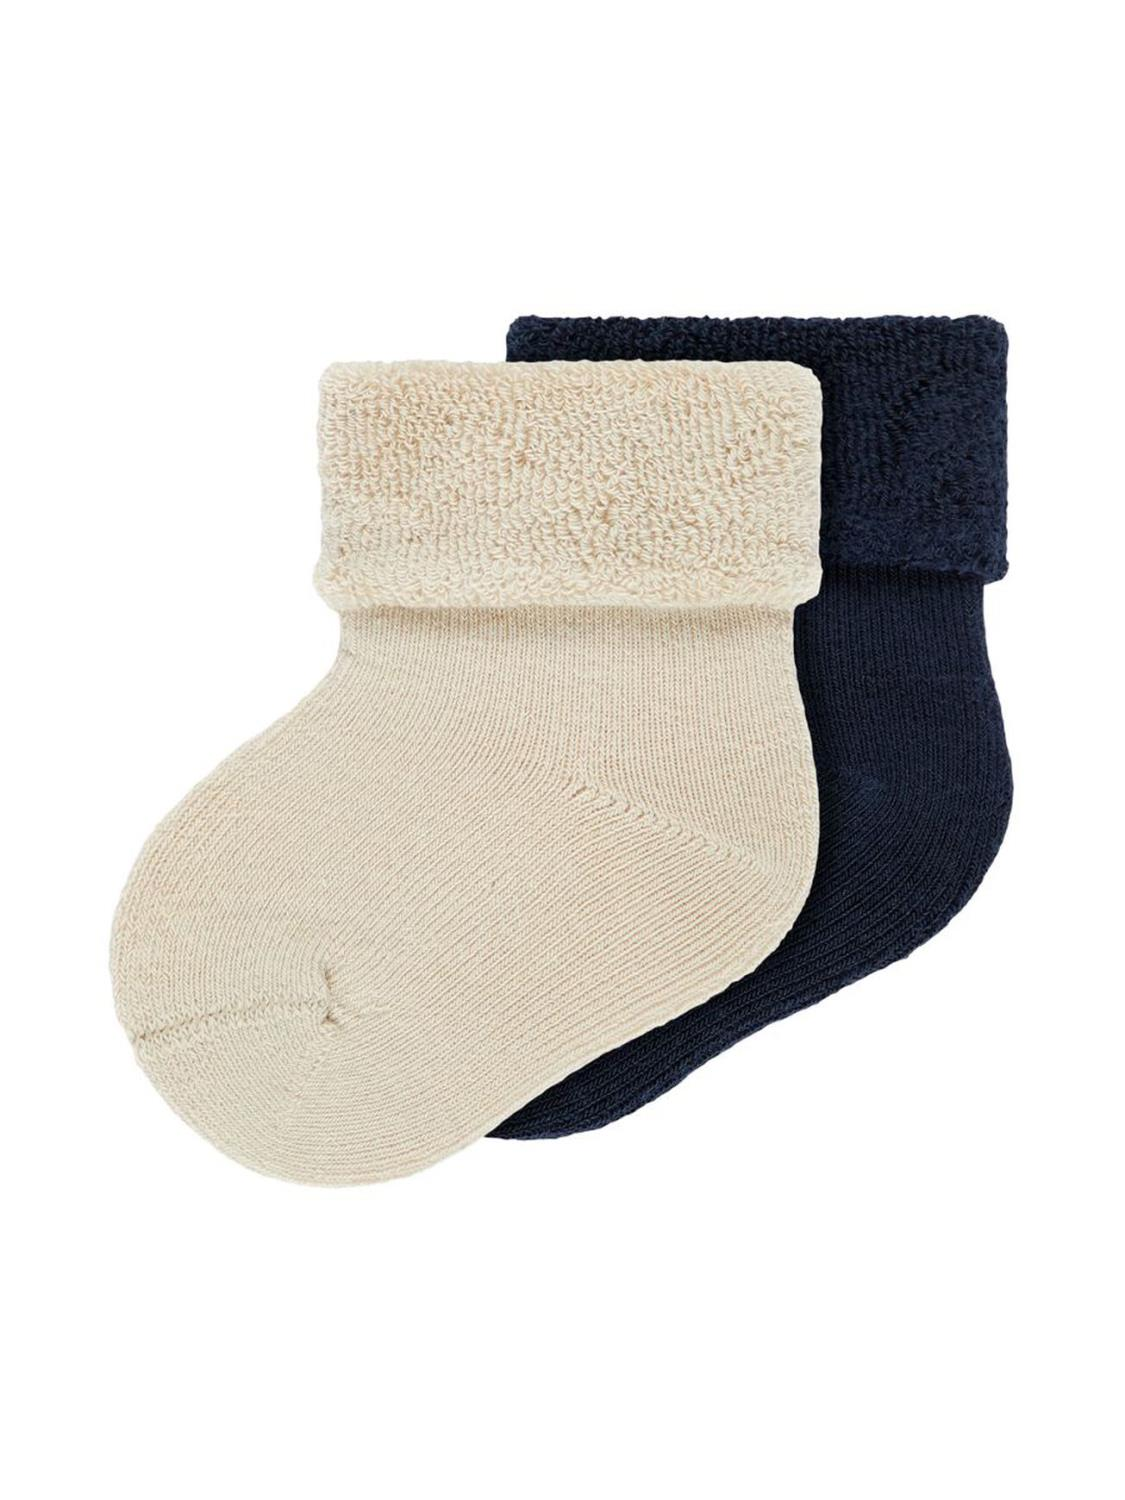 FARONNE 2PK TERRY FROTE SOCK - NAME IT